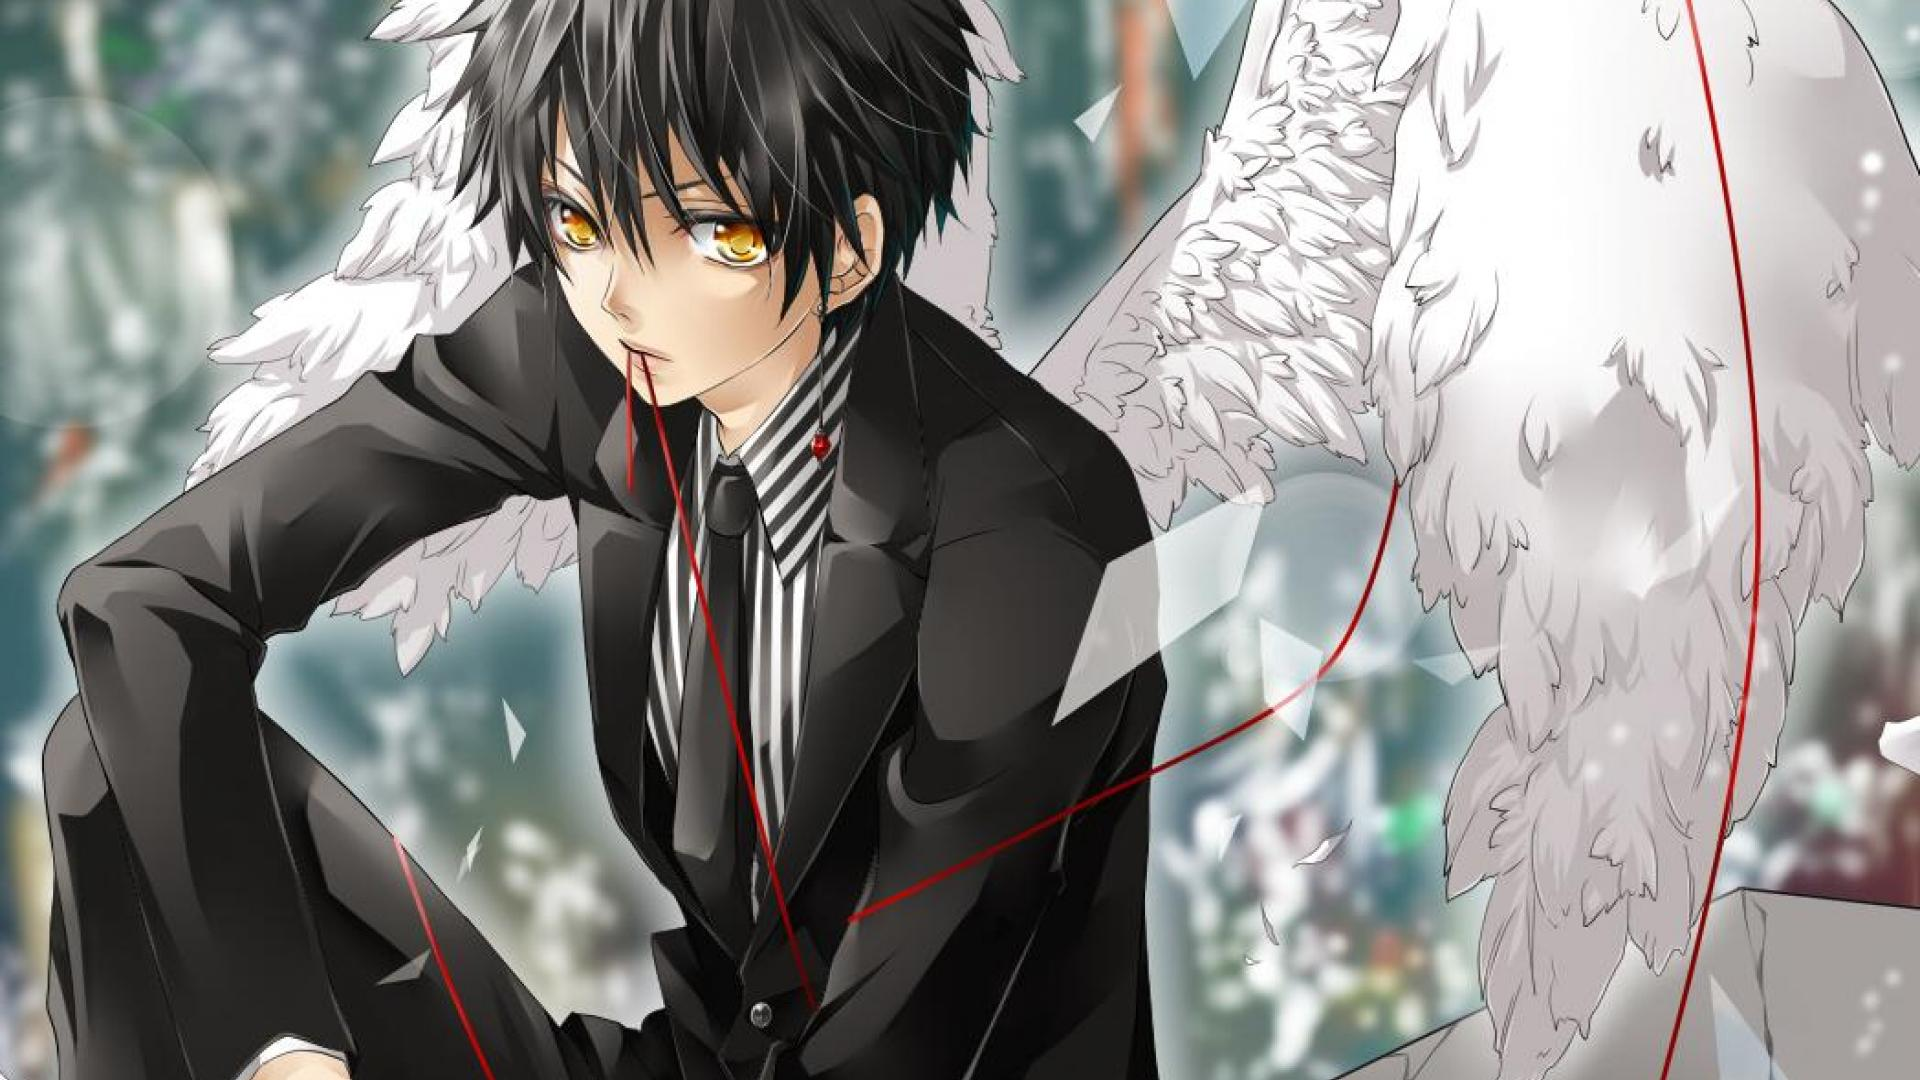 download Hot Anime Guys Wallpapers 51 [1920x1080] for your 1920x1080